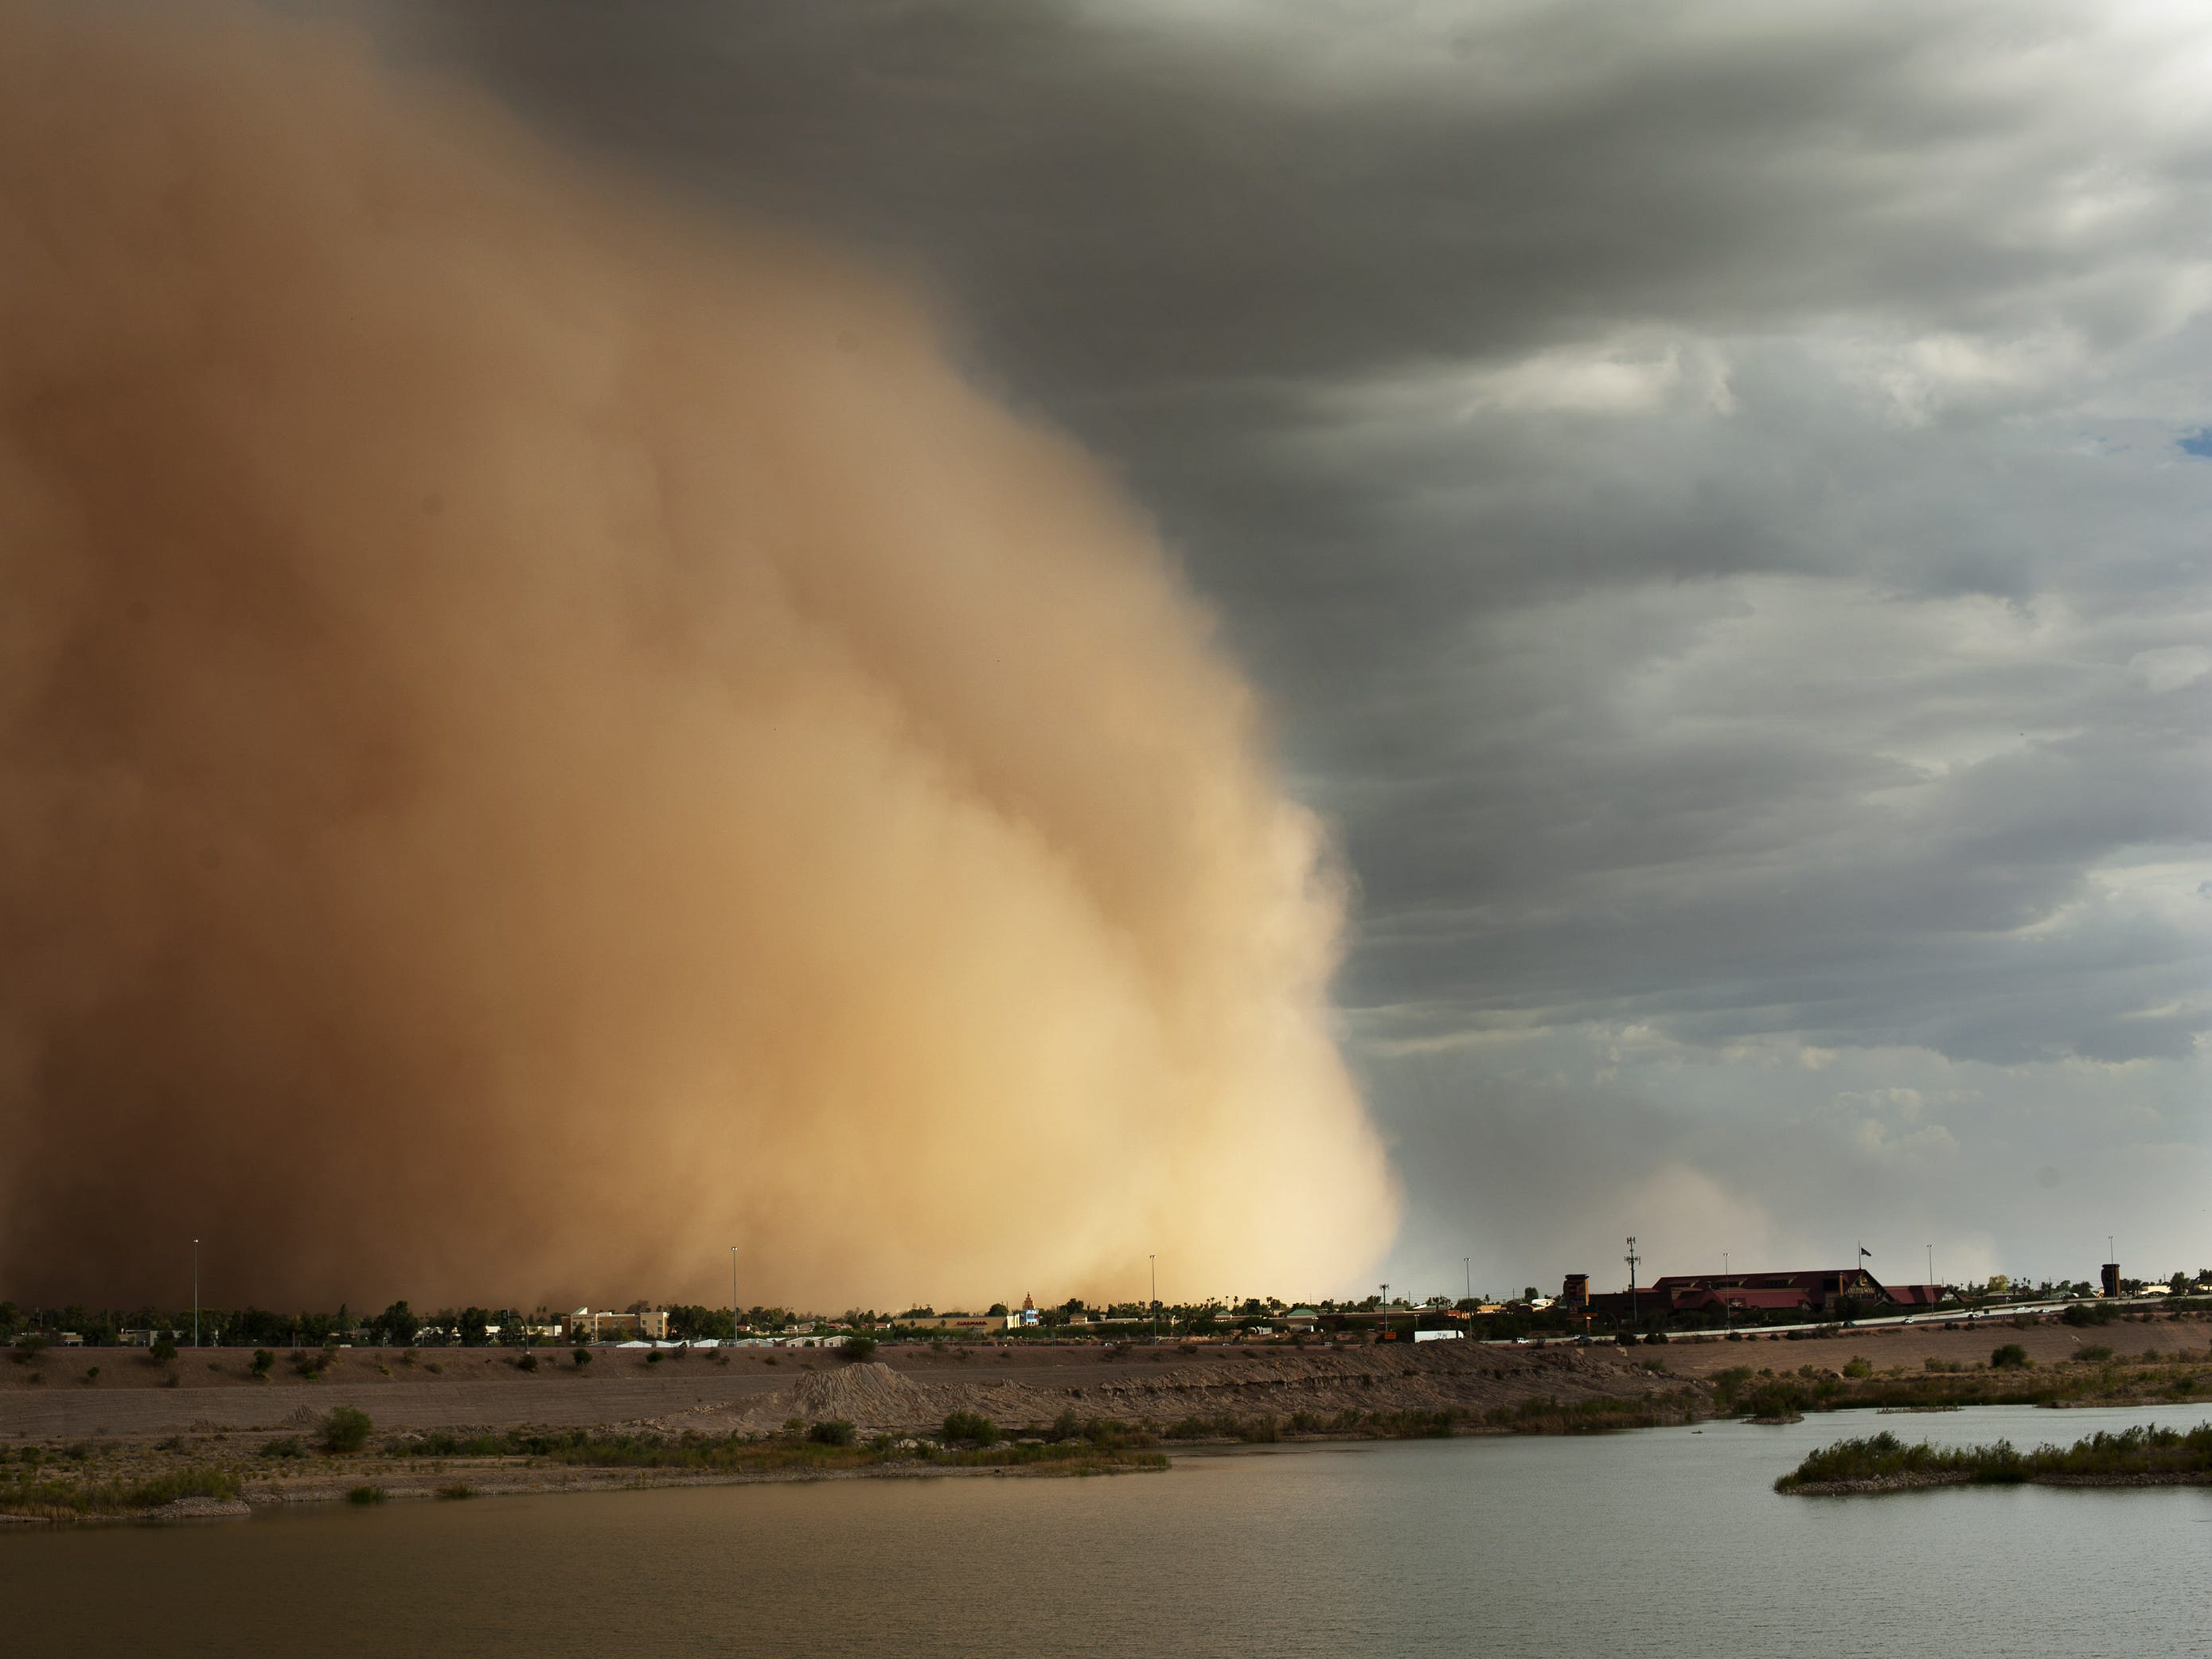 A dust storm blows through the Salt River Pima Maricopa Indian Reservation on July 21, 2012.